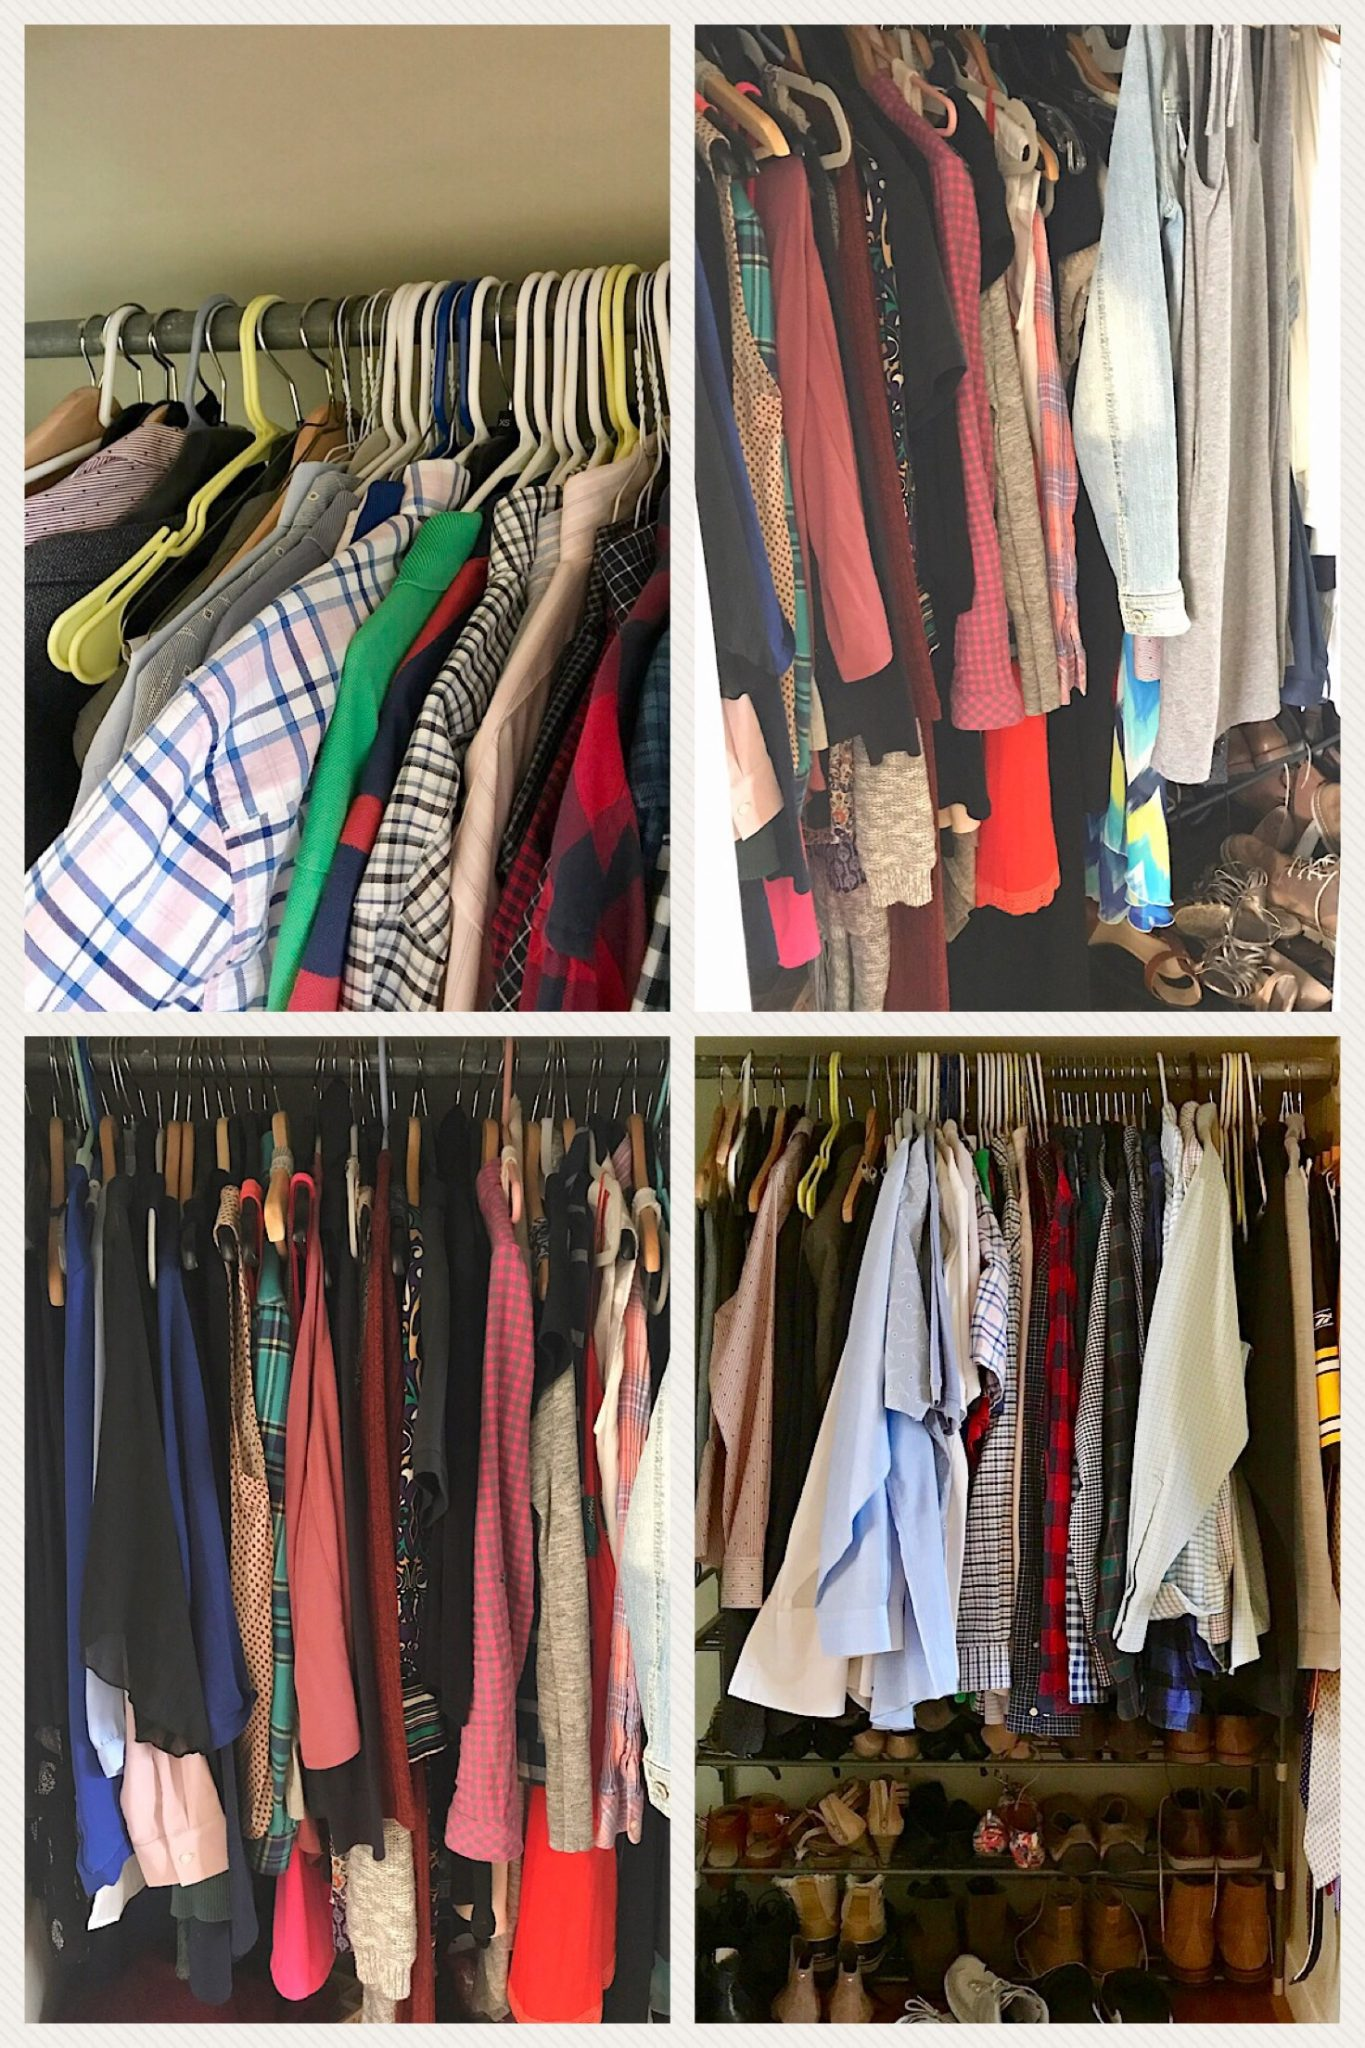 A photo of a closet space before organizing.